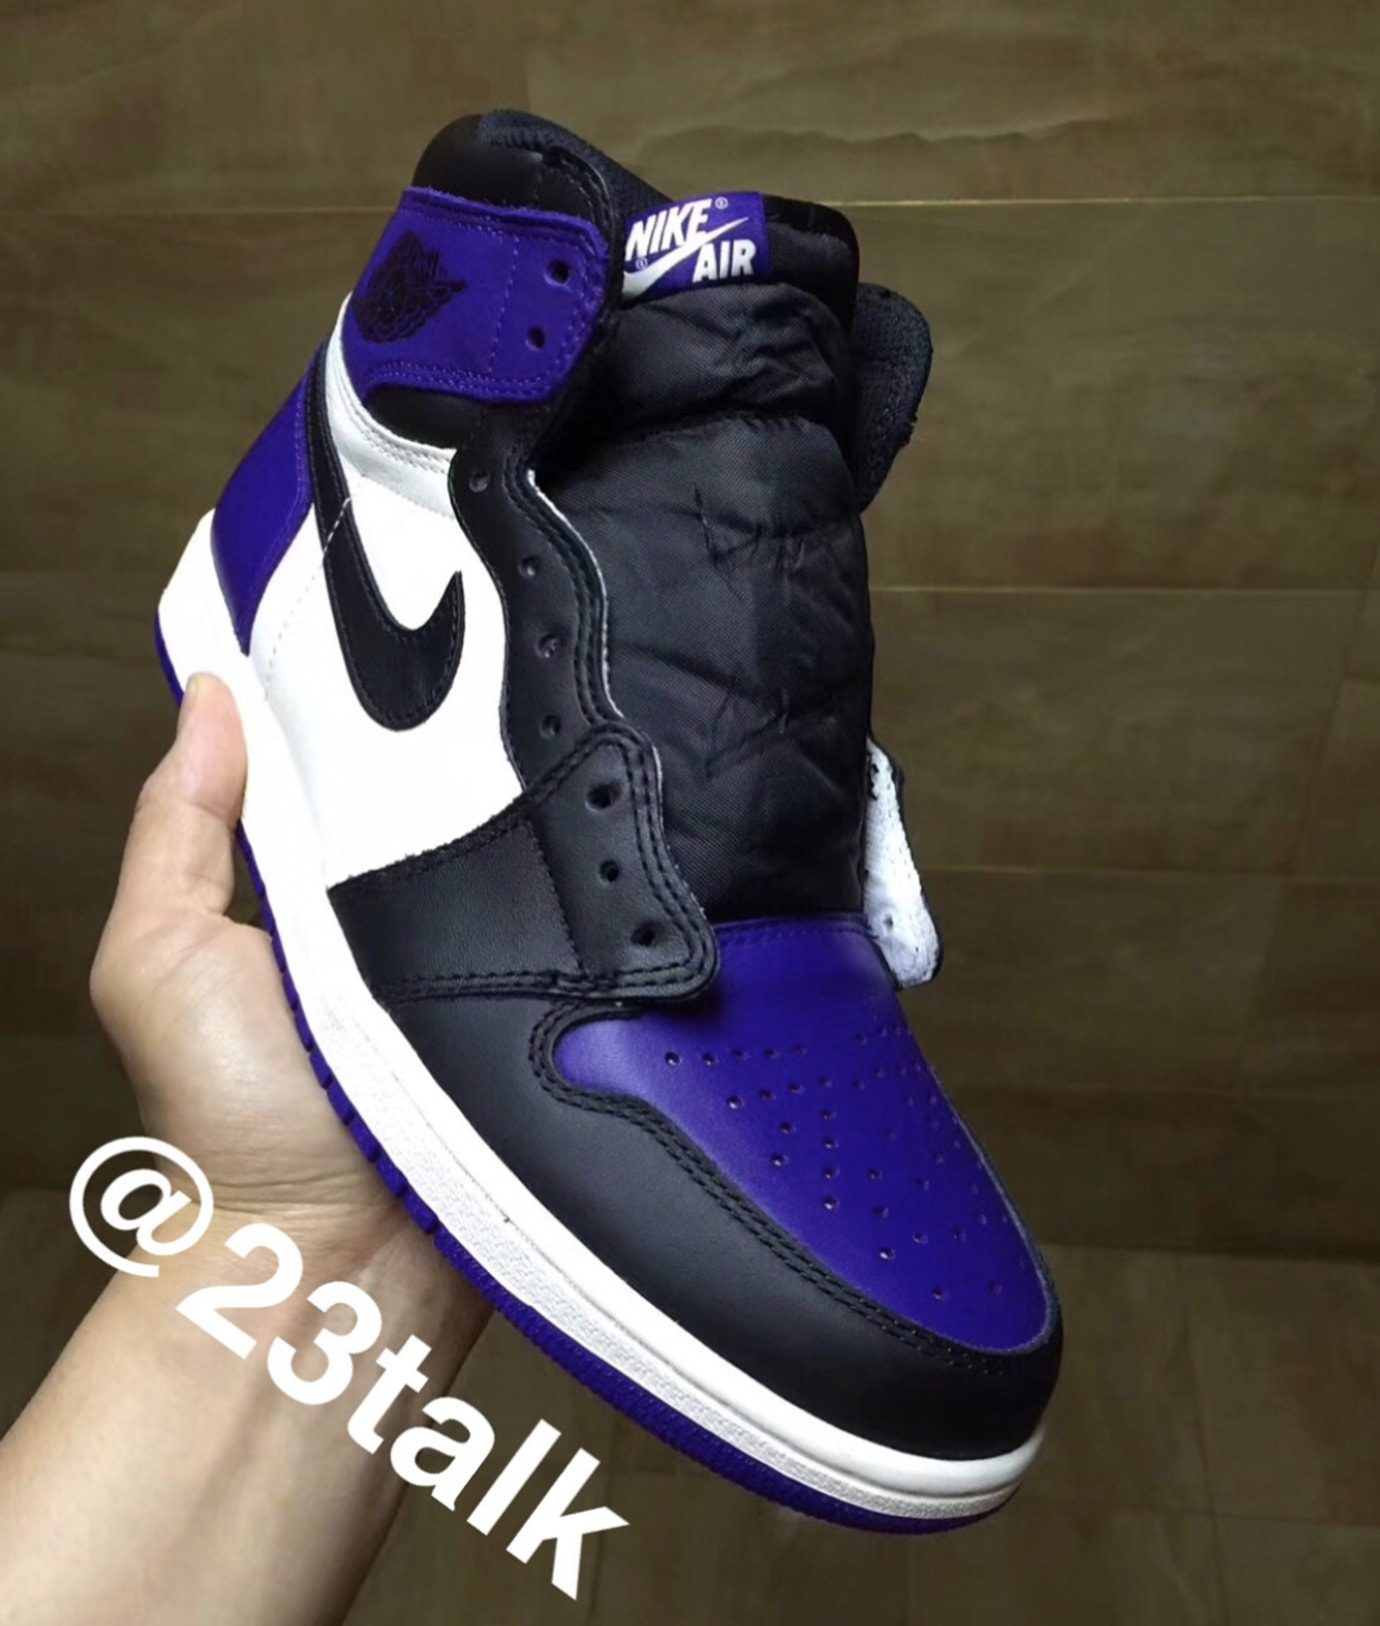 Air Jordan 1 'Court Purple' 1